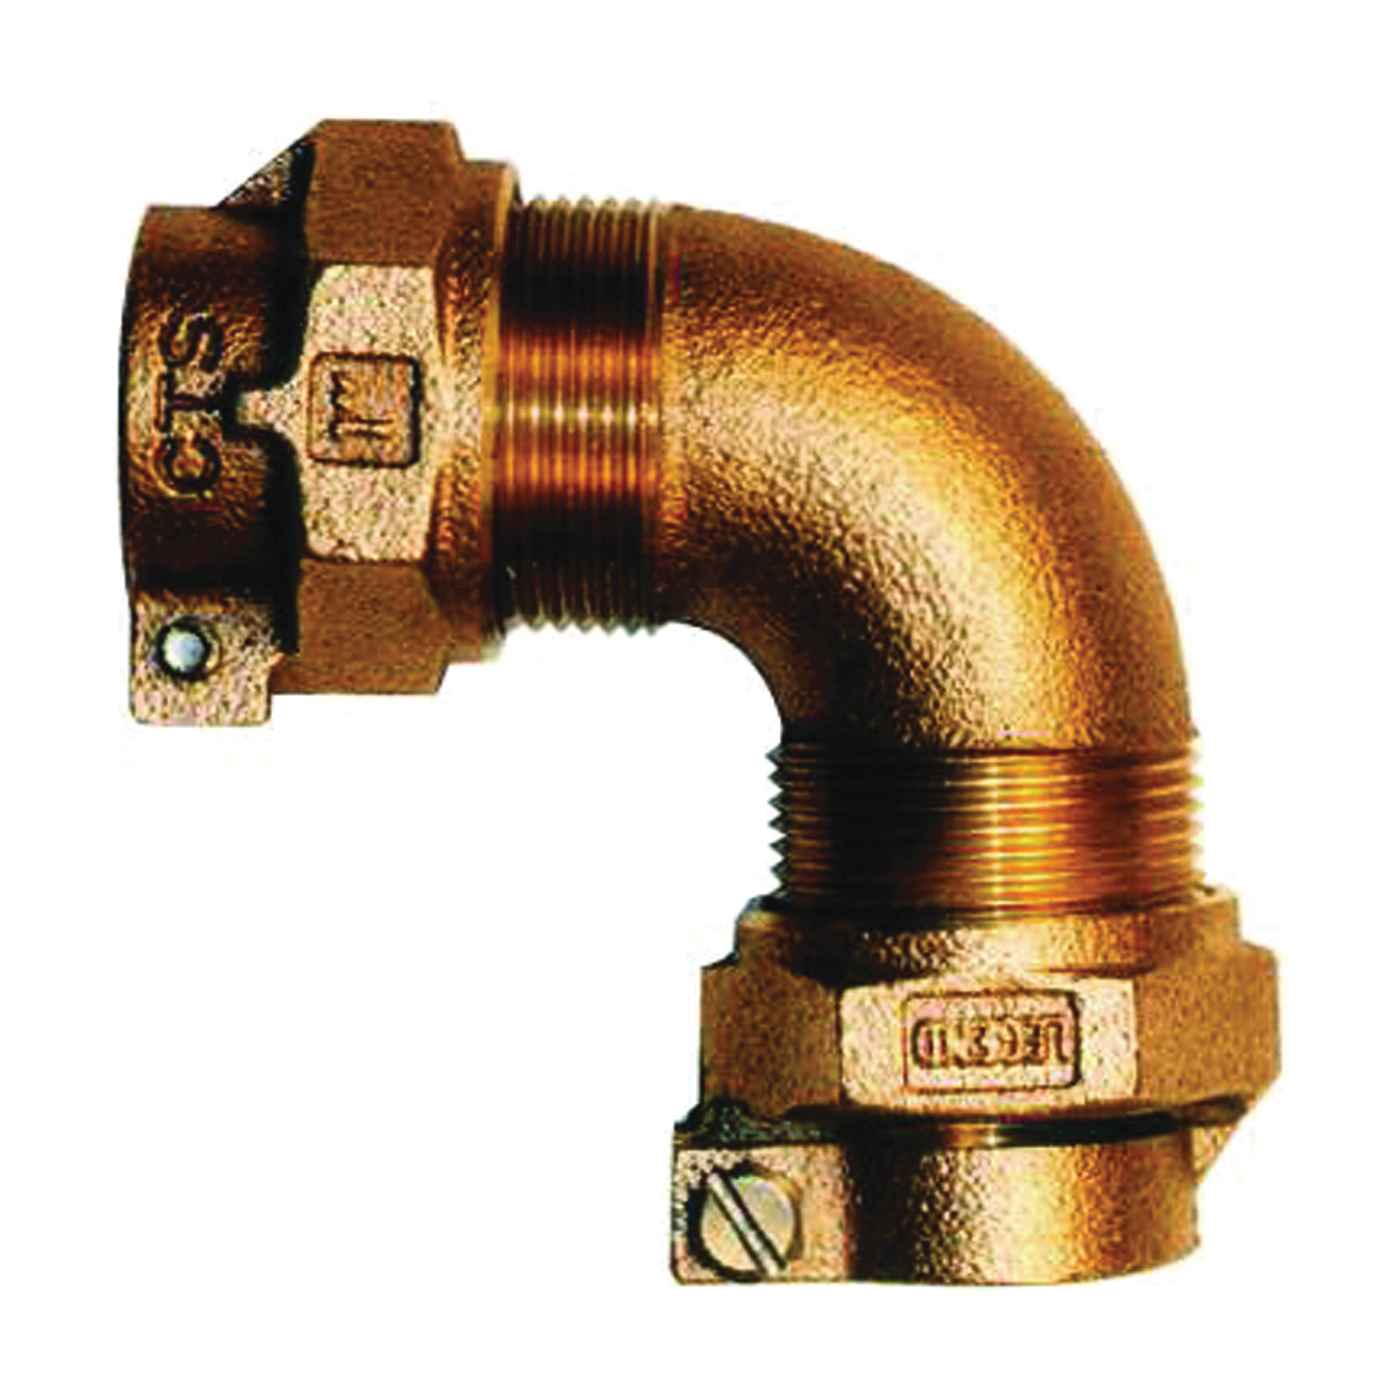 Picture of Legend T-4411NL 313-334NL Pipe Elbow, 3/4 in, Pack Joint, 90 deg Angle, Bronze, 100 psi Pressure